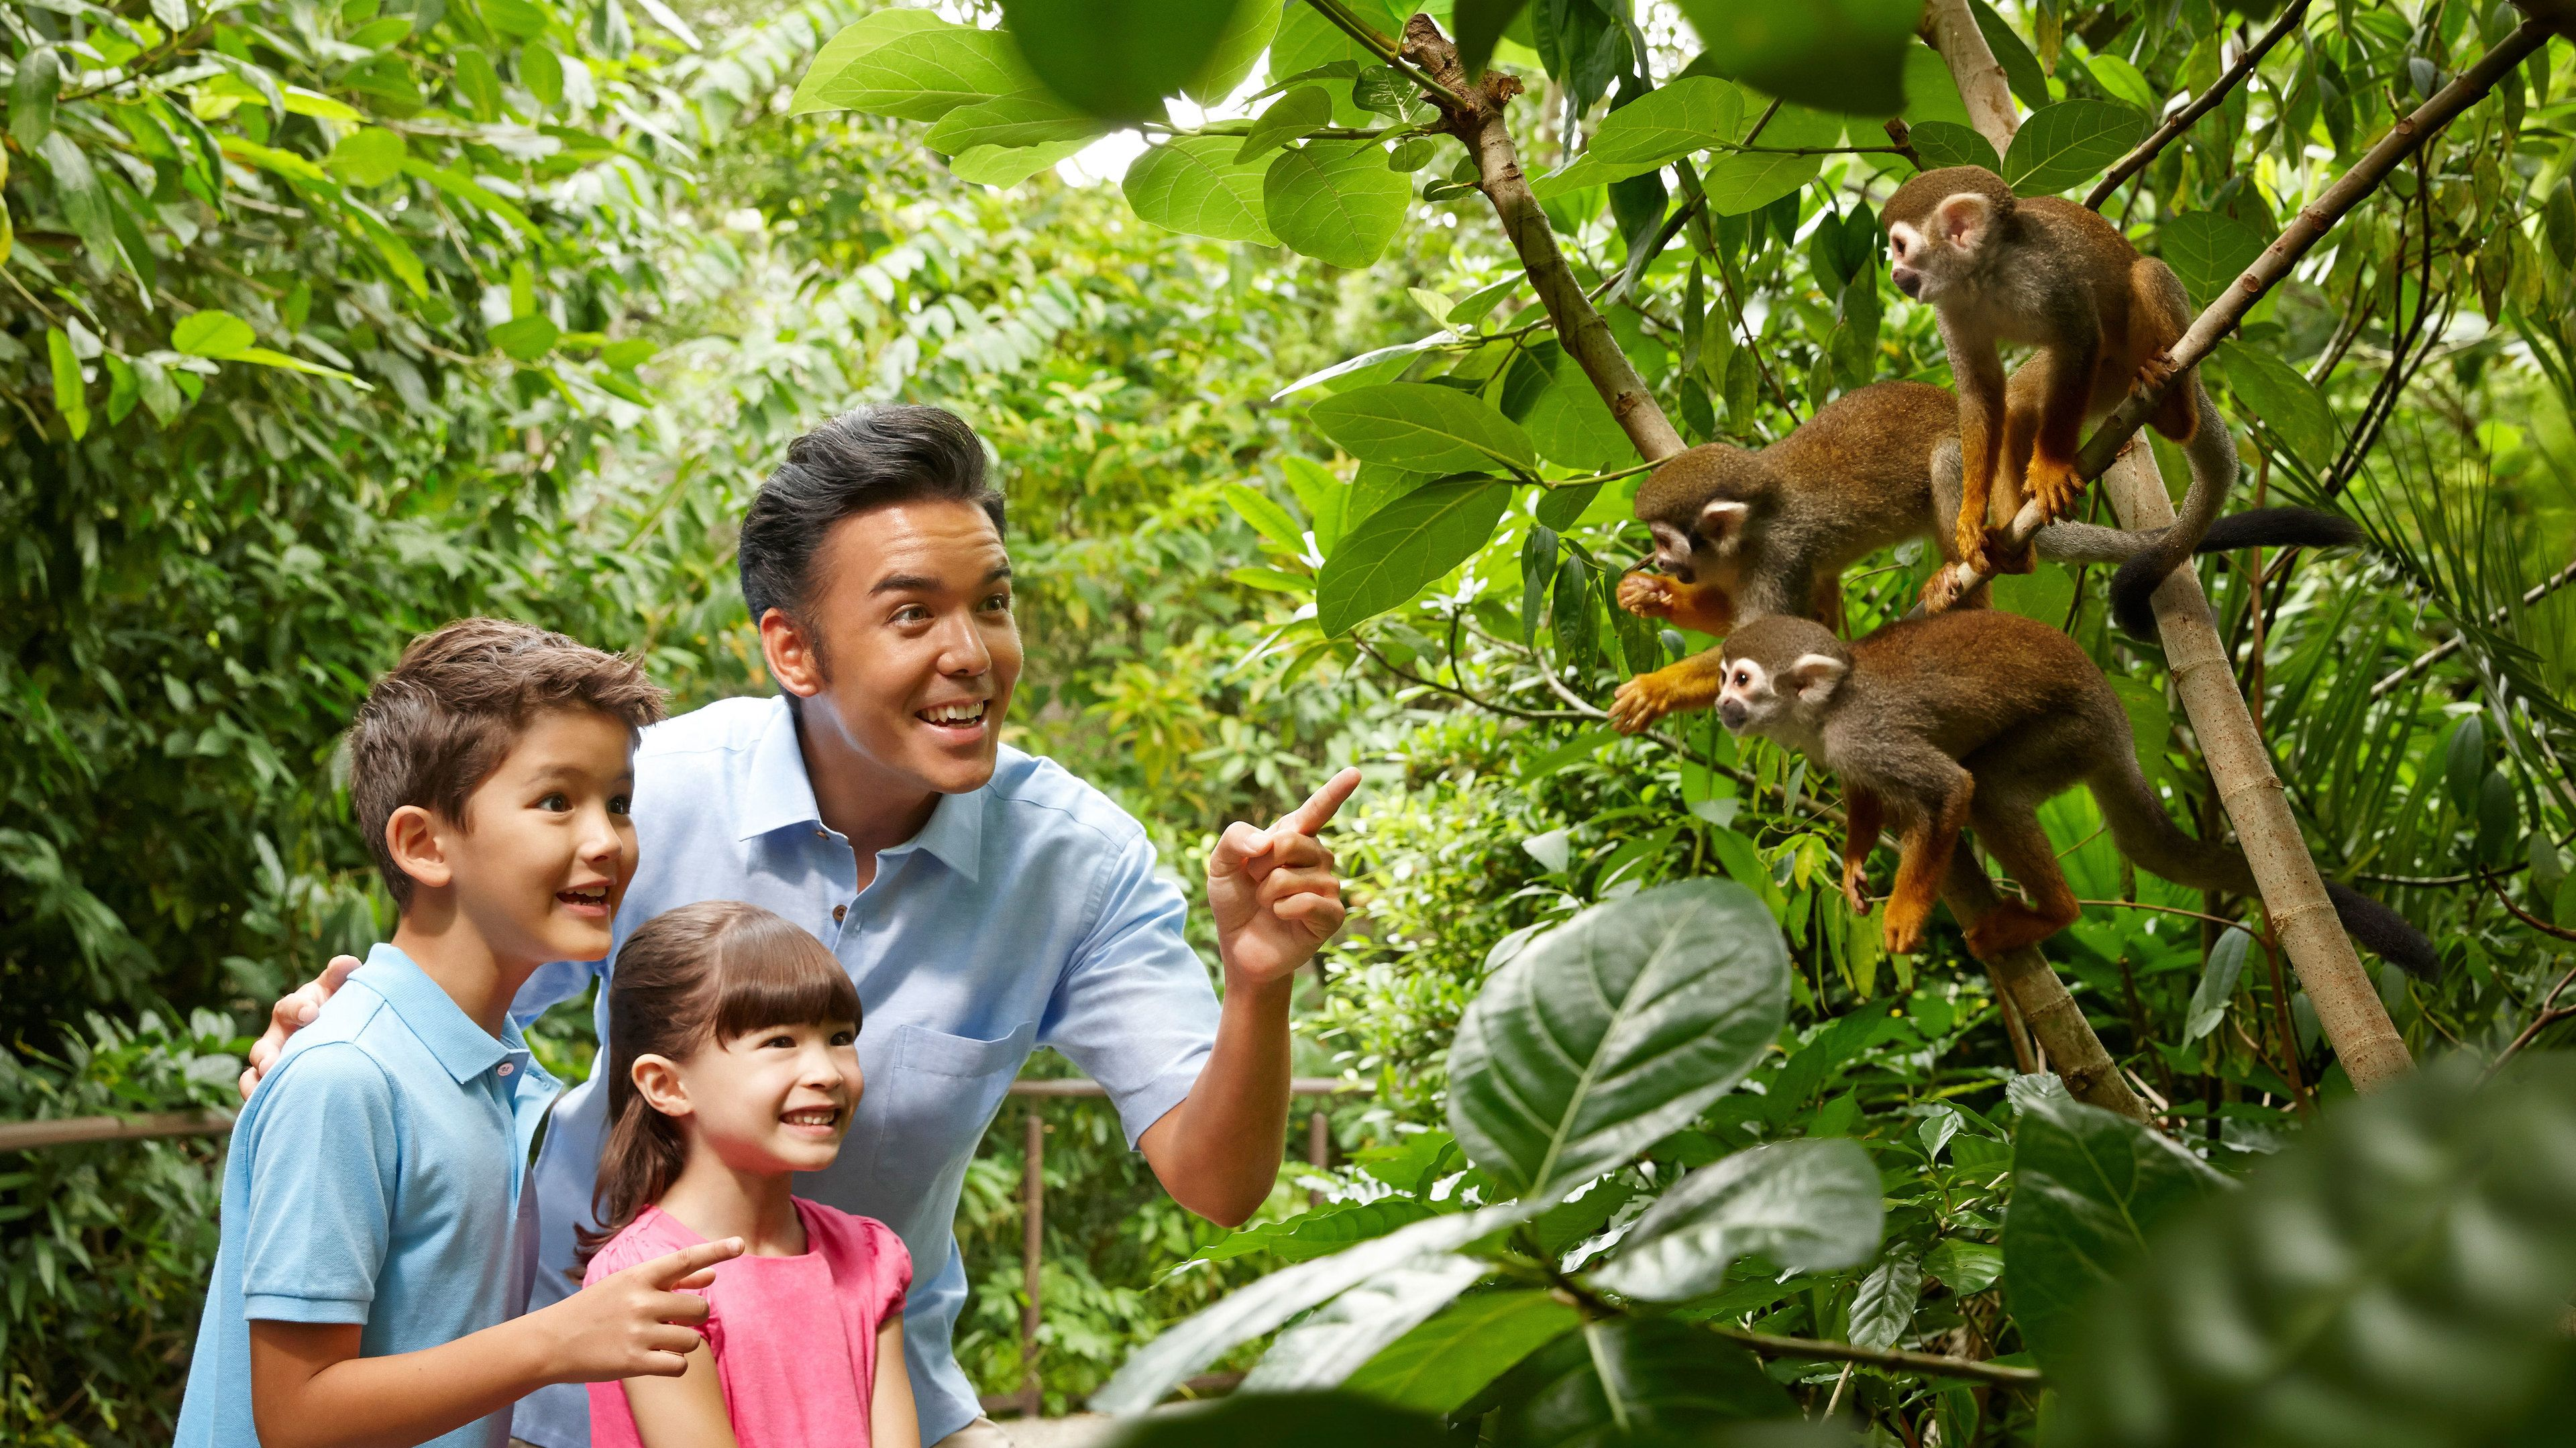 Father, son and daughter get a close look at some monkeys